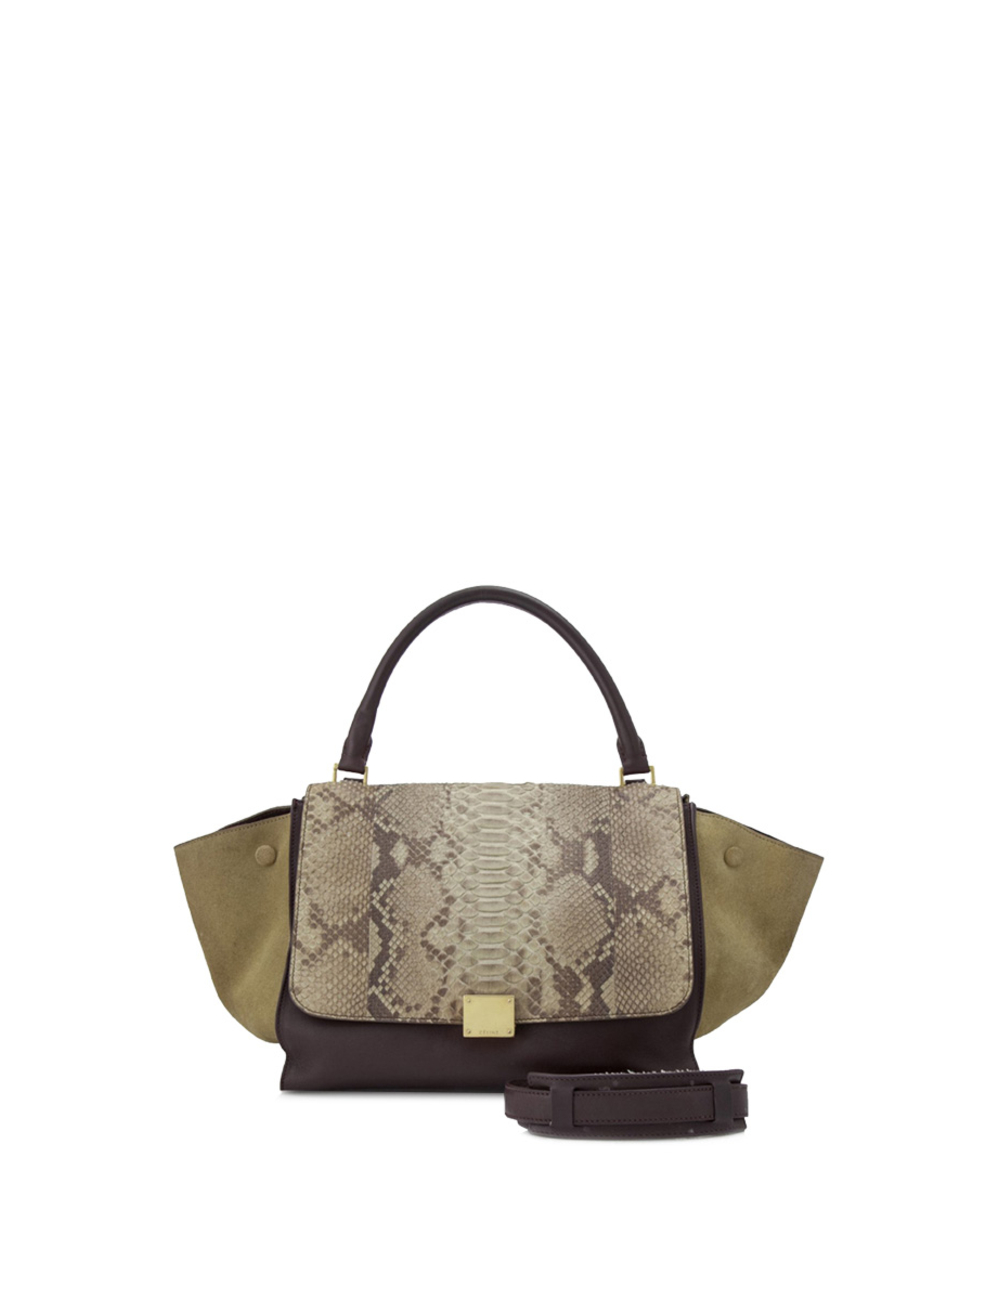 The Trapeze features a snakeskin leather and suede body, a rolled top handle, a detachable flat stra